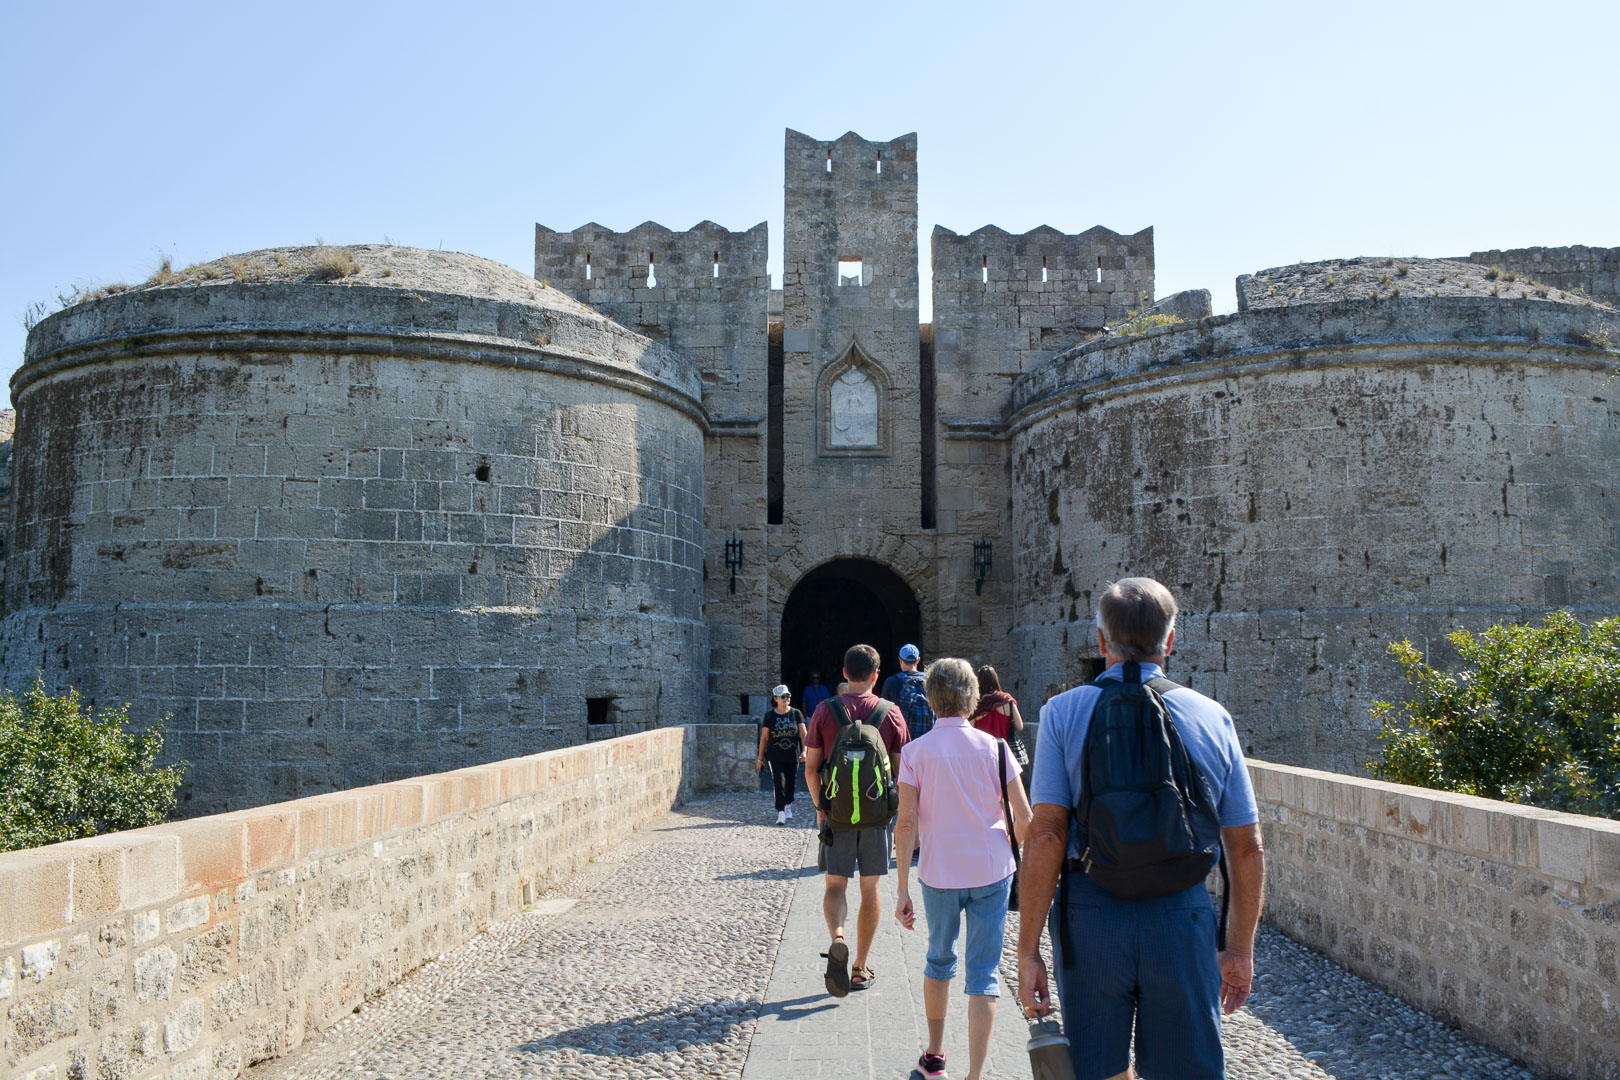 There are only a few entrances into the old city